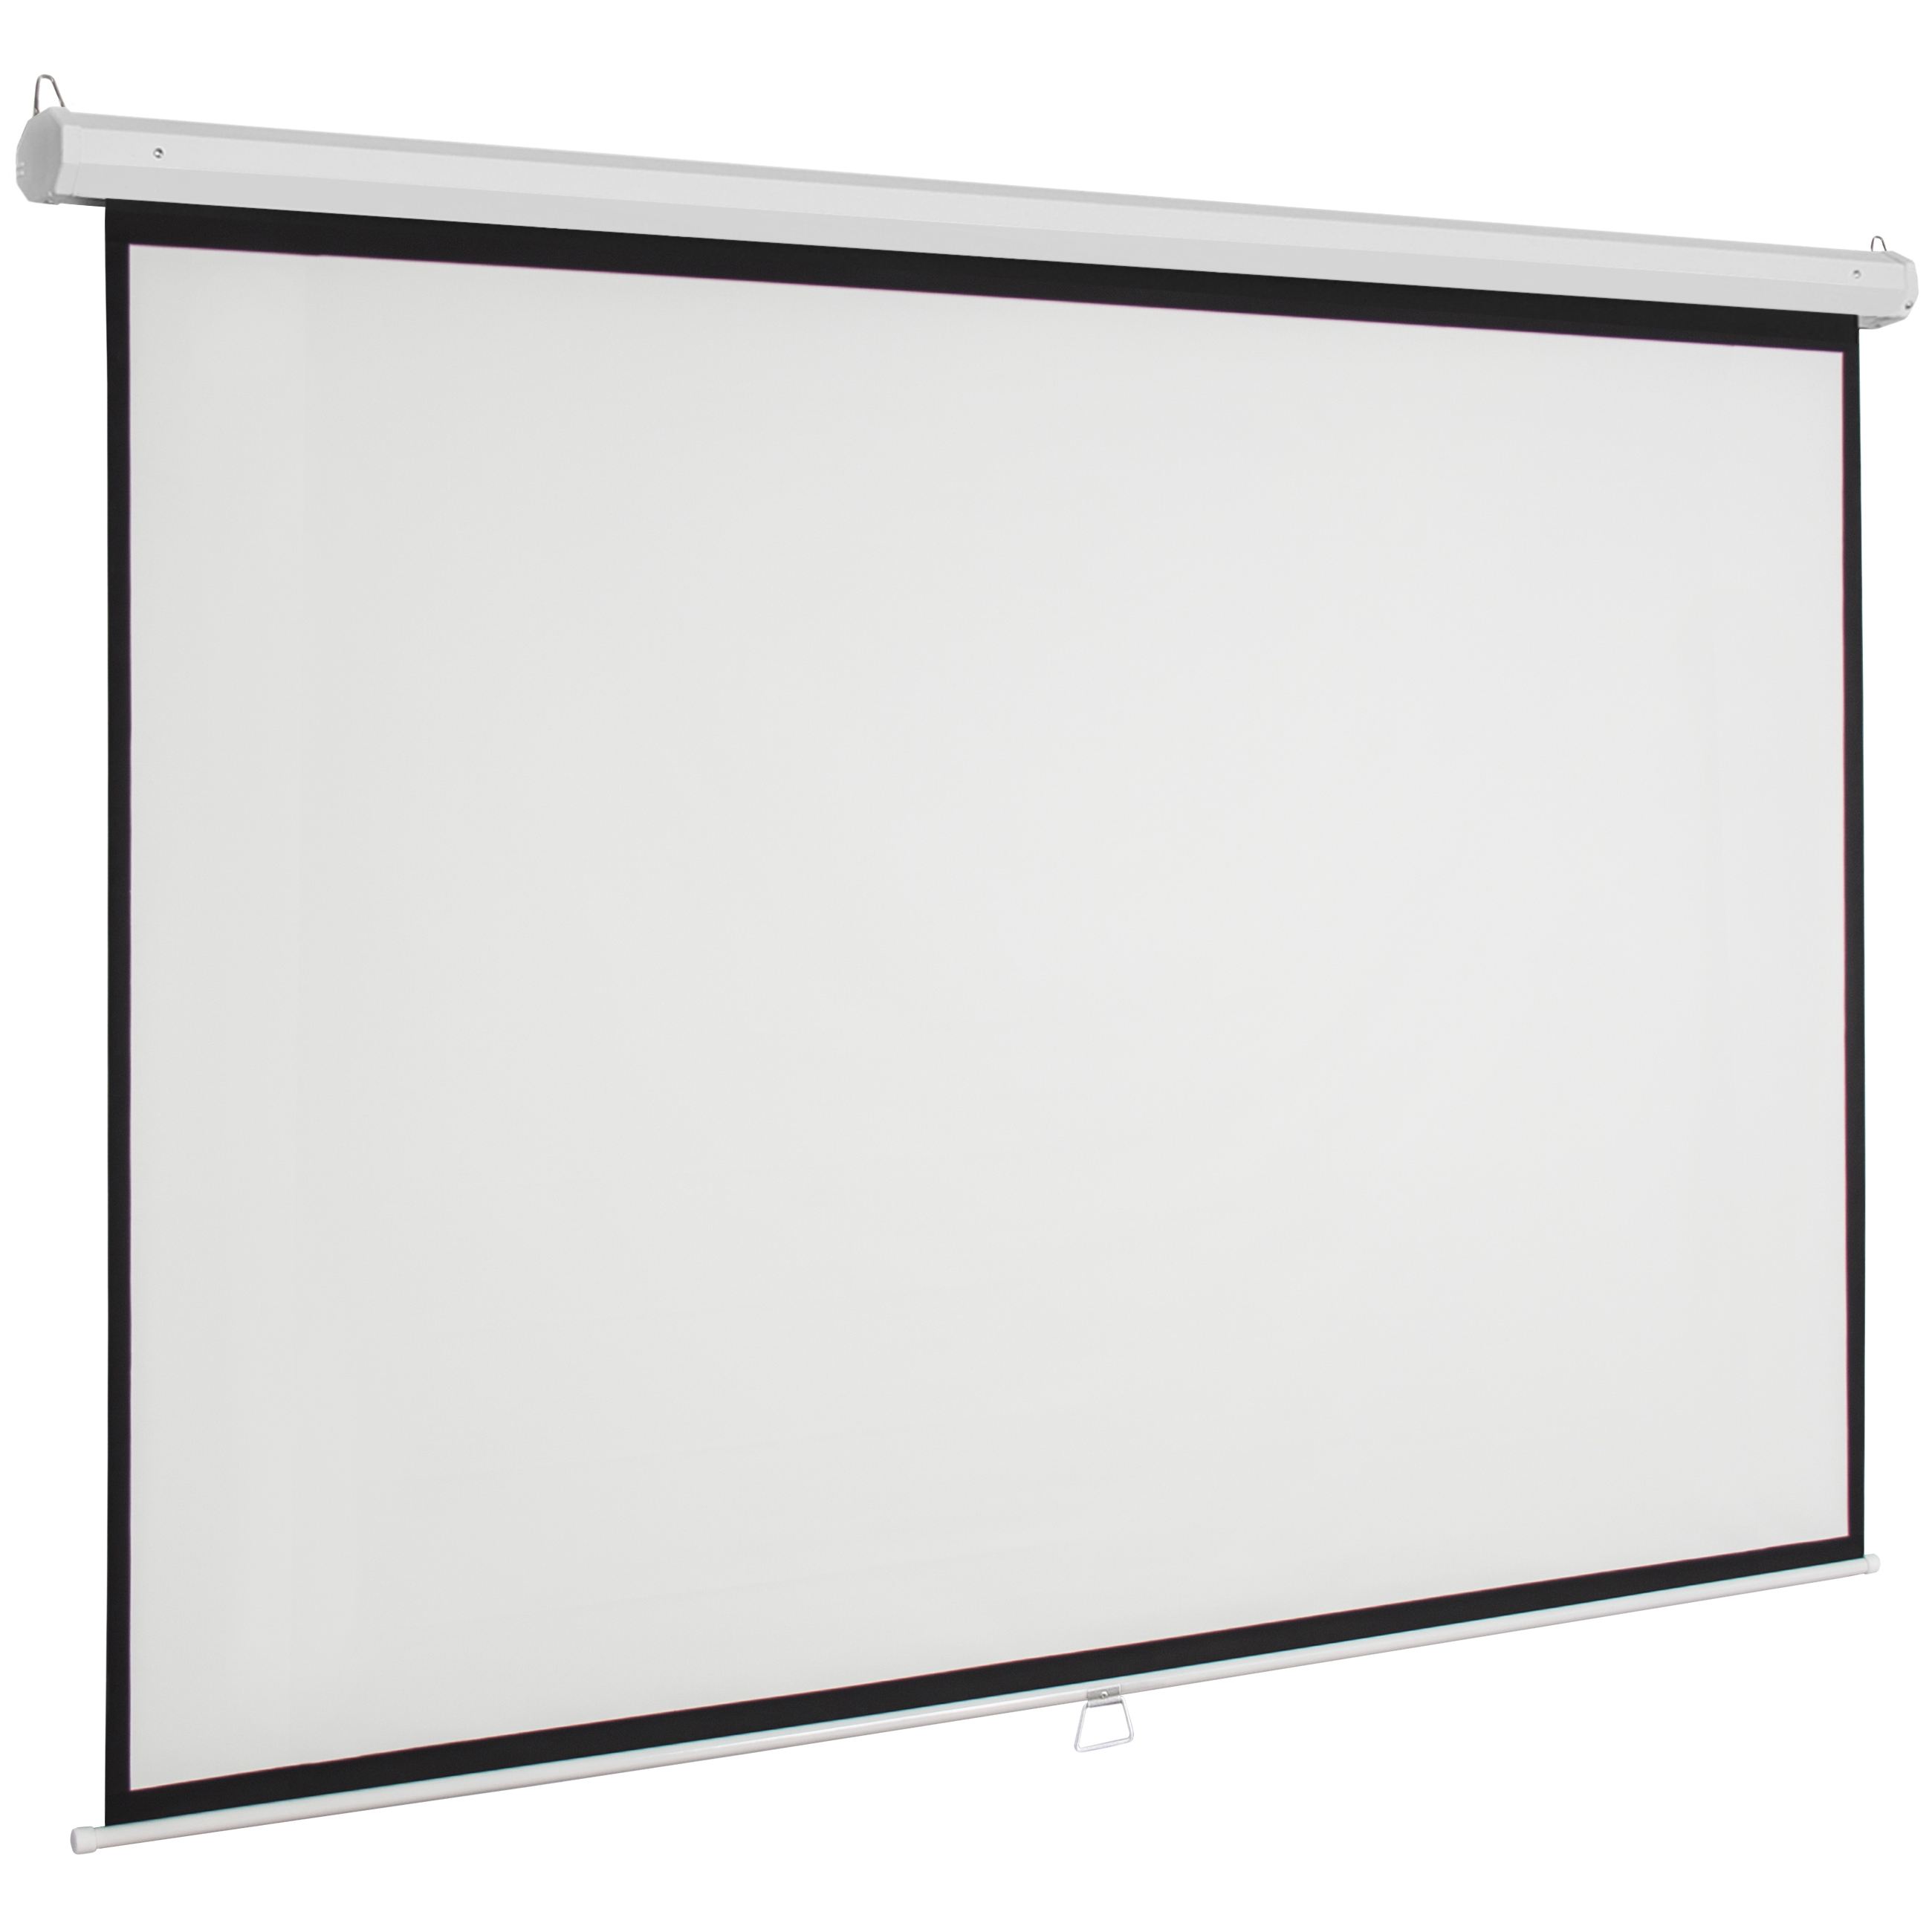 Related keywords suggestions for movie projector screen for Miroir projector walmart